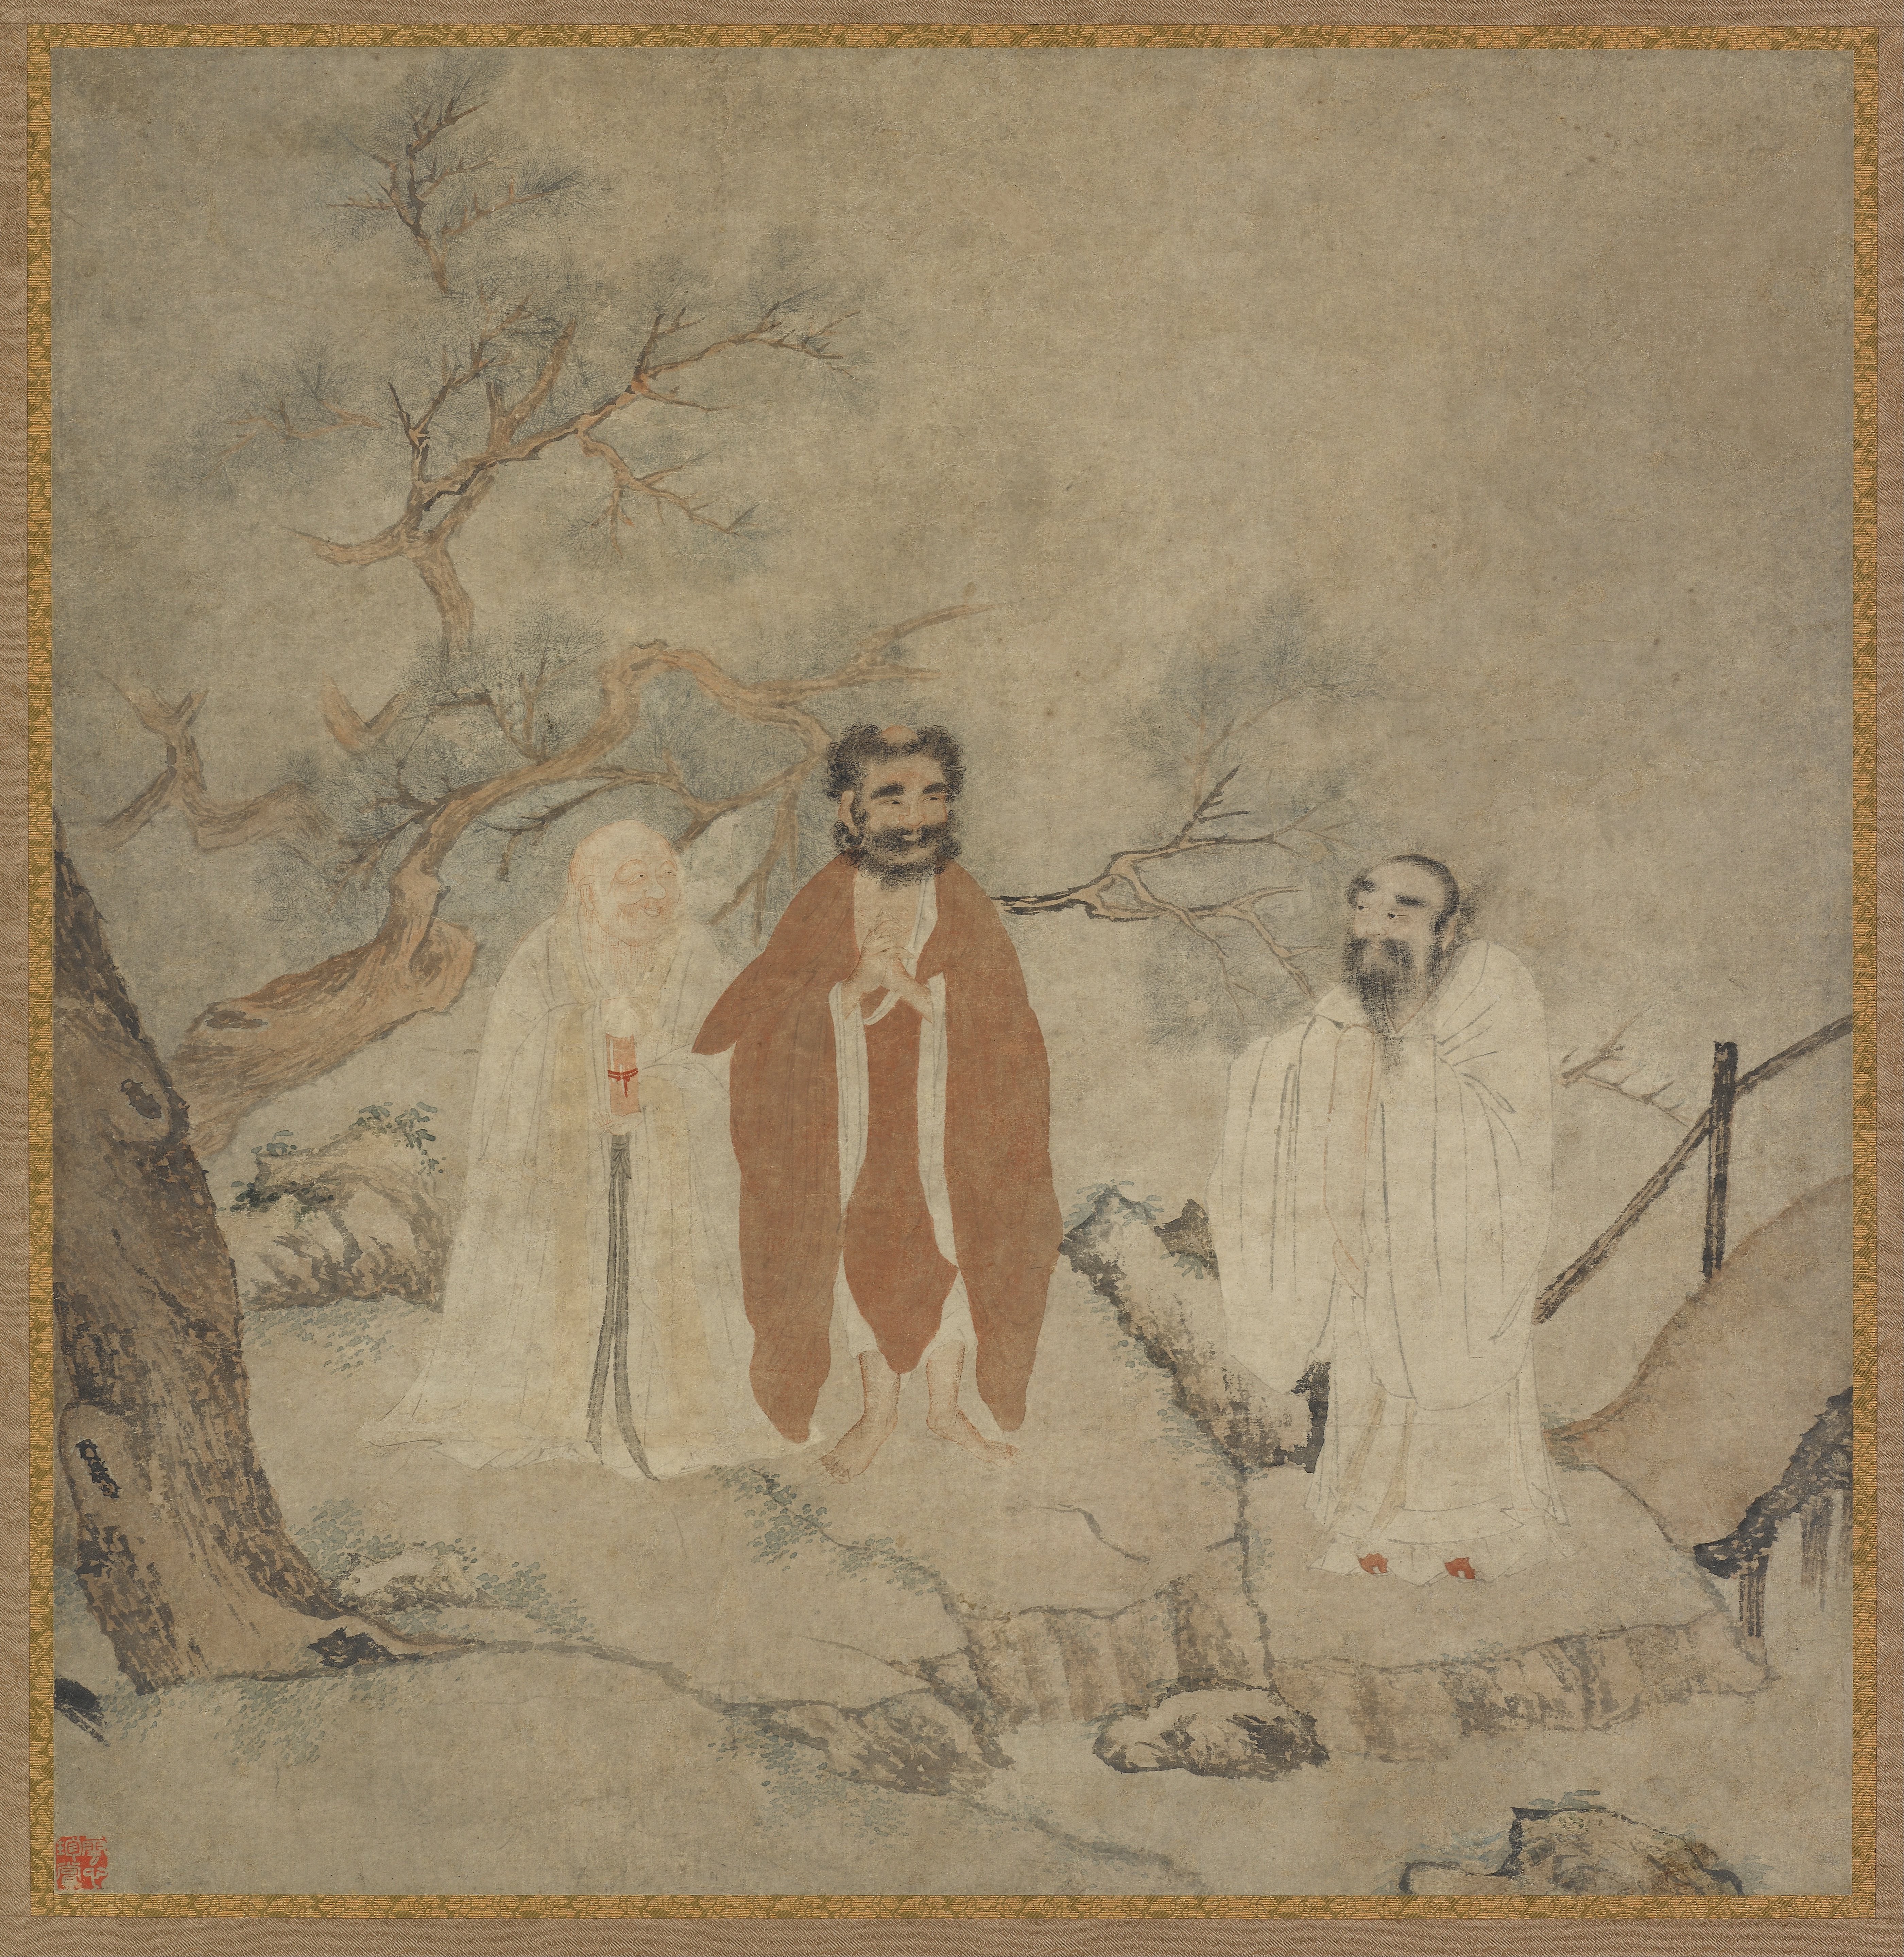 the influence of confucianism and buddhism Confucianism in particular raised fierce opposition to buddhism  buddhism to  be a nihilistic worldview, with a negative impact on.